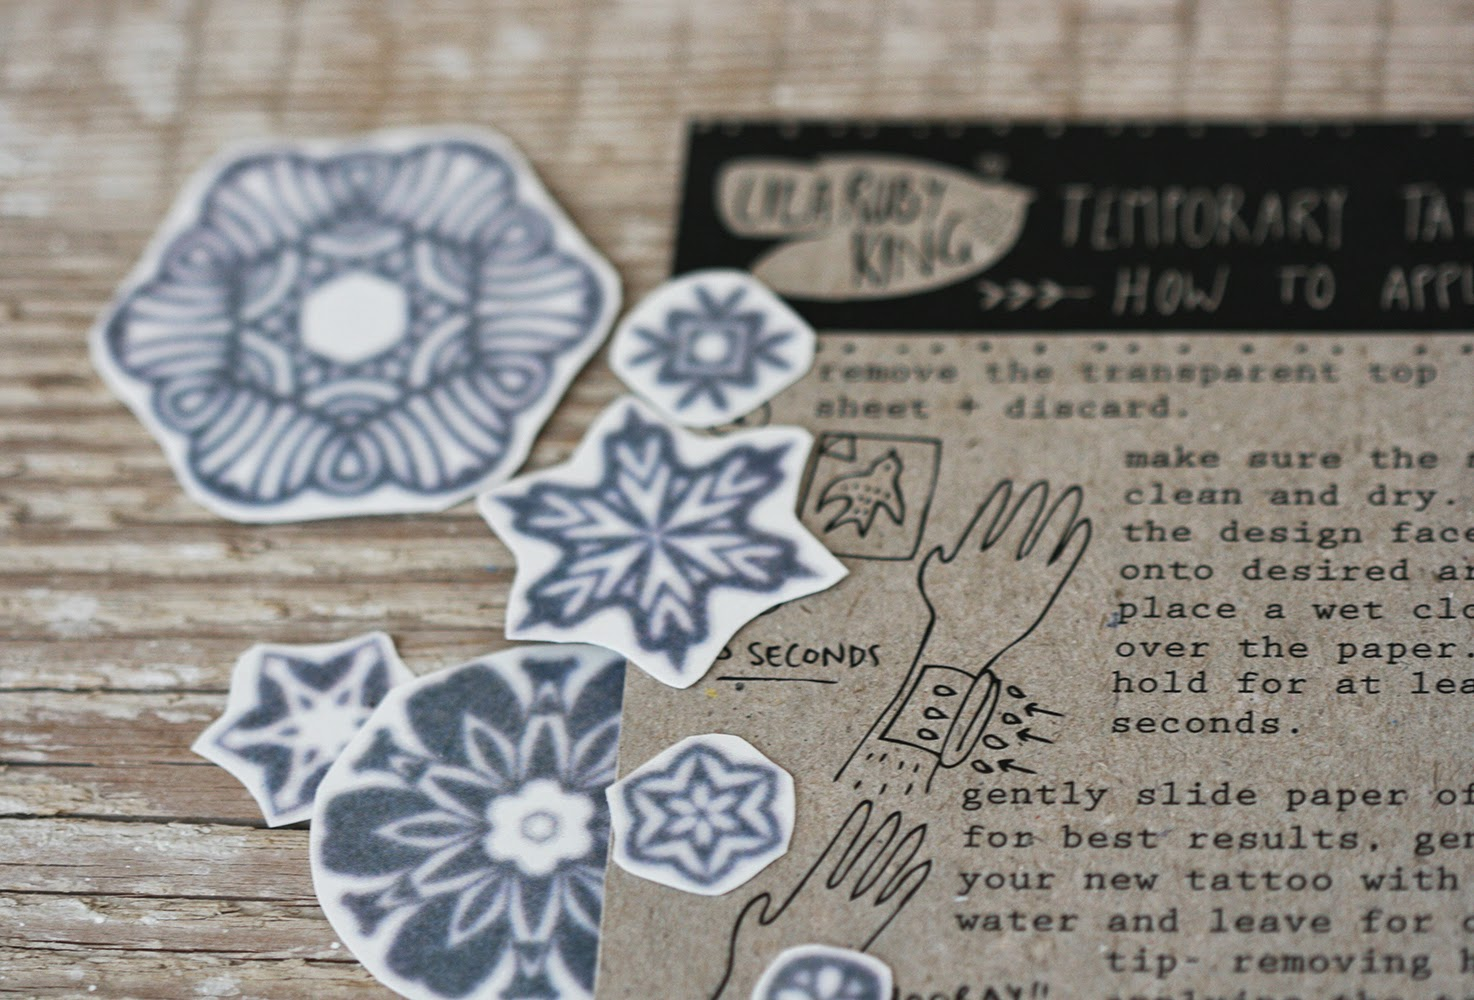 https://www.etsy.com/listing/192513813/seven-stars-temporary-tattoos?ref=shop_home_active_12